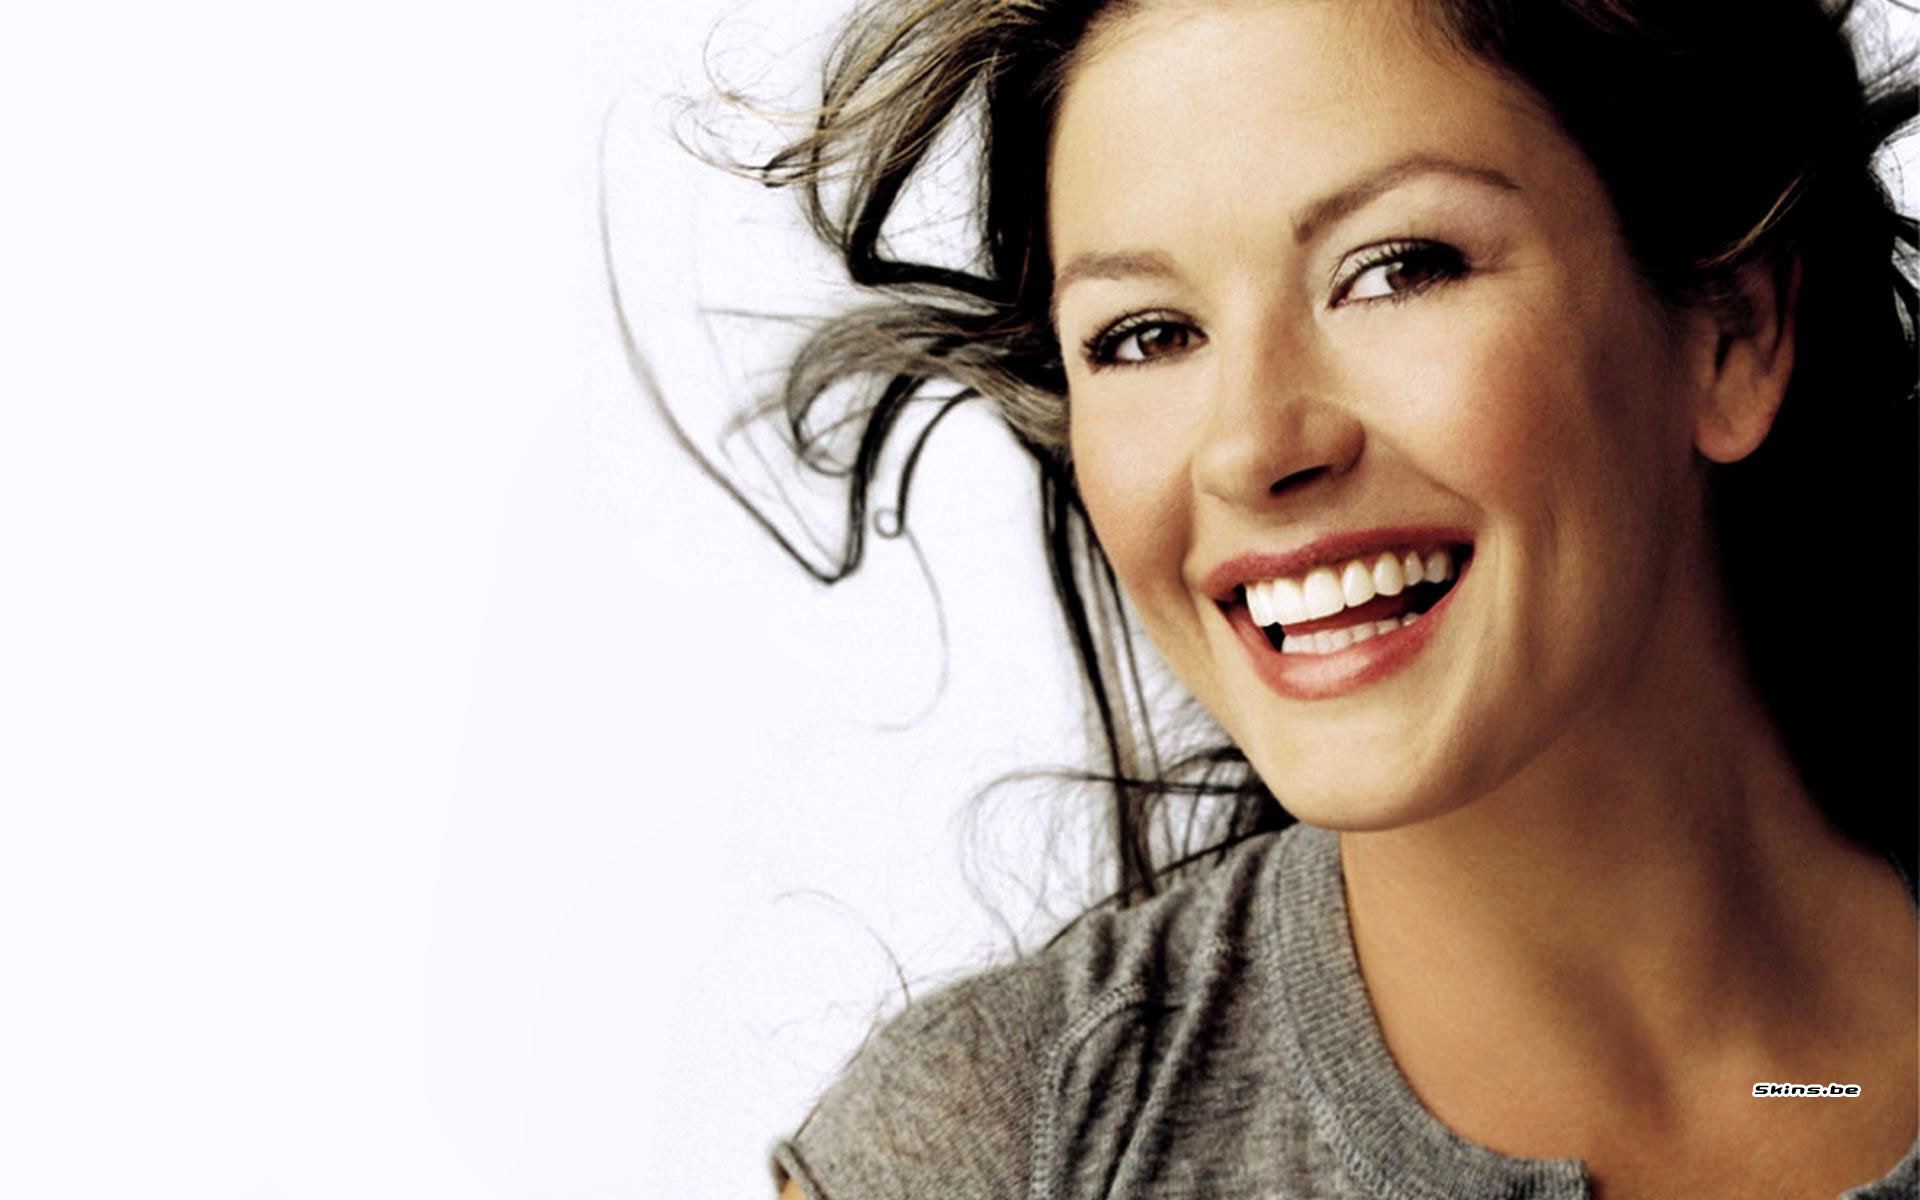 Makeup Star Libra Females Catherine Zeta-Jones-6